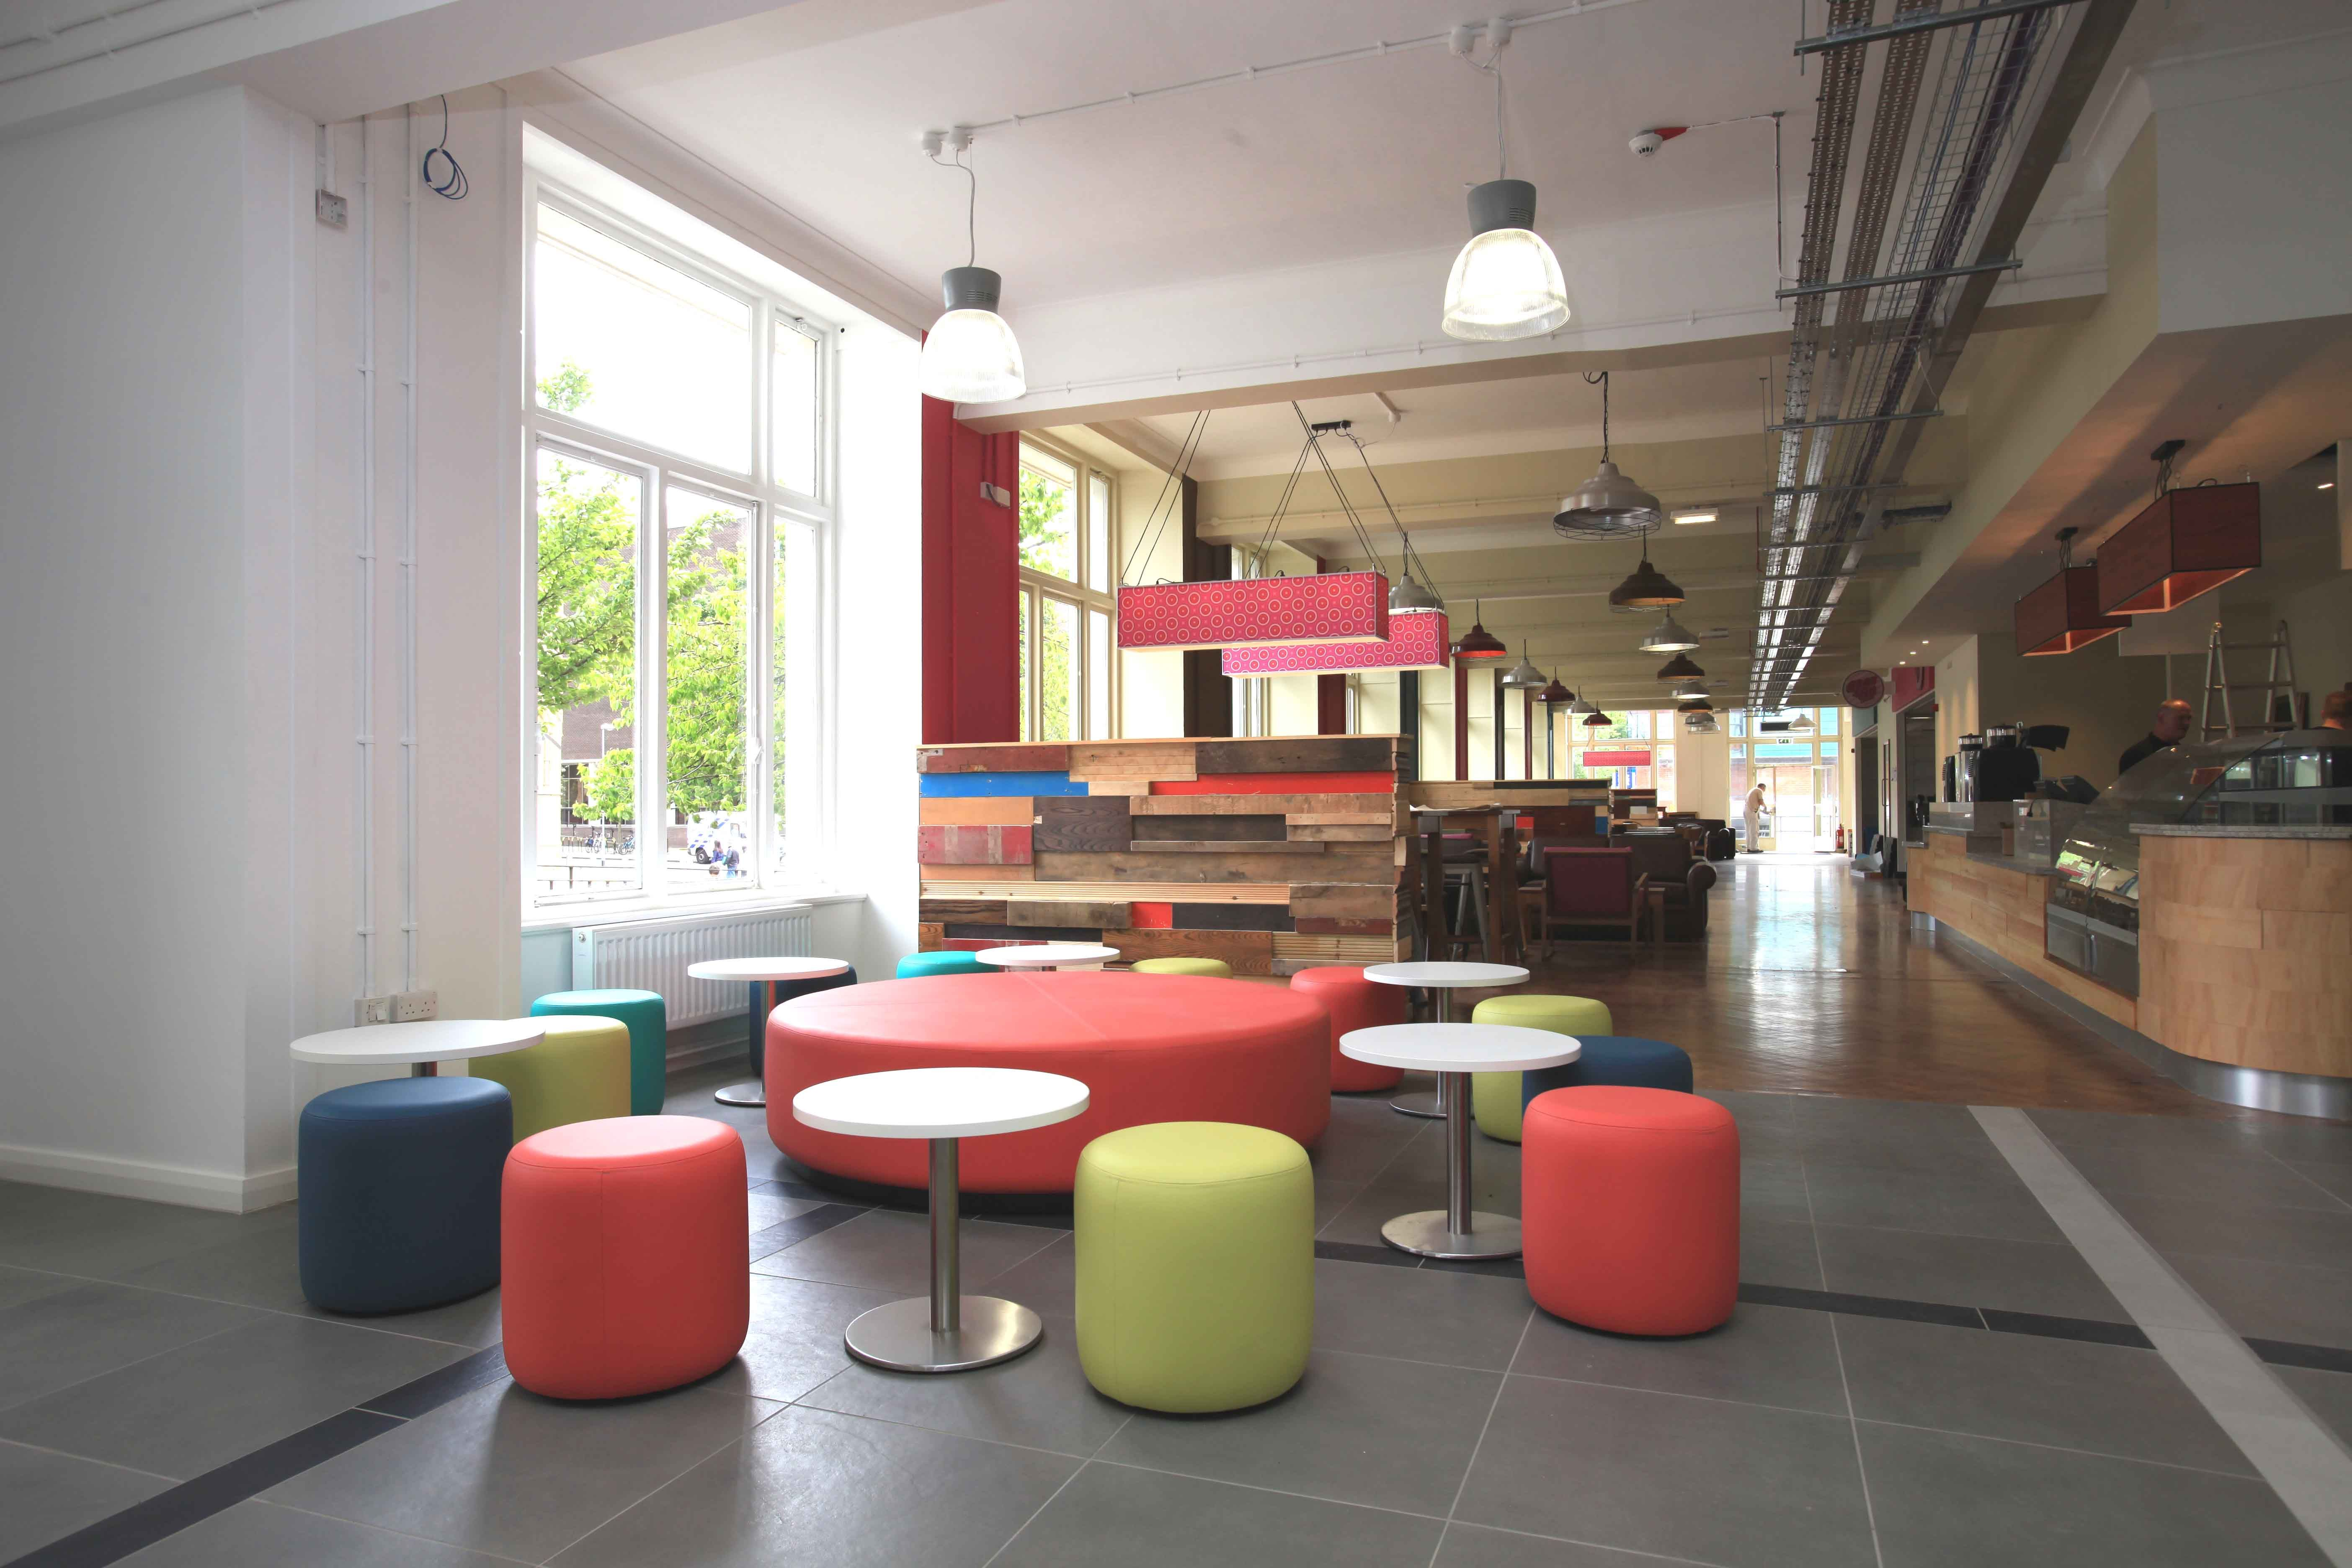 Students 39 union manchester university work inspiration - Oakland community college interior design ...